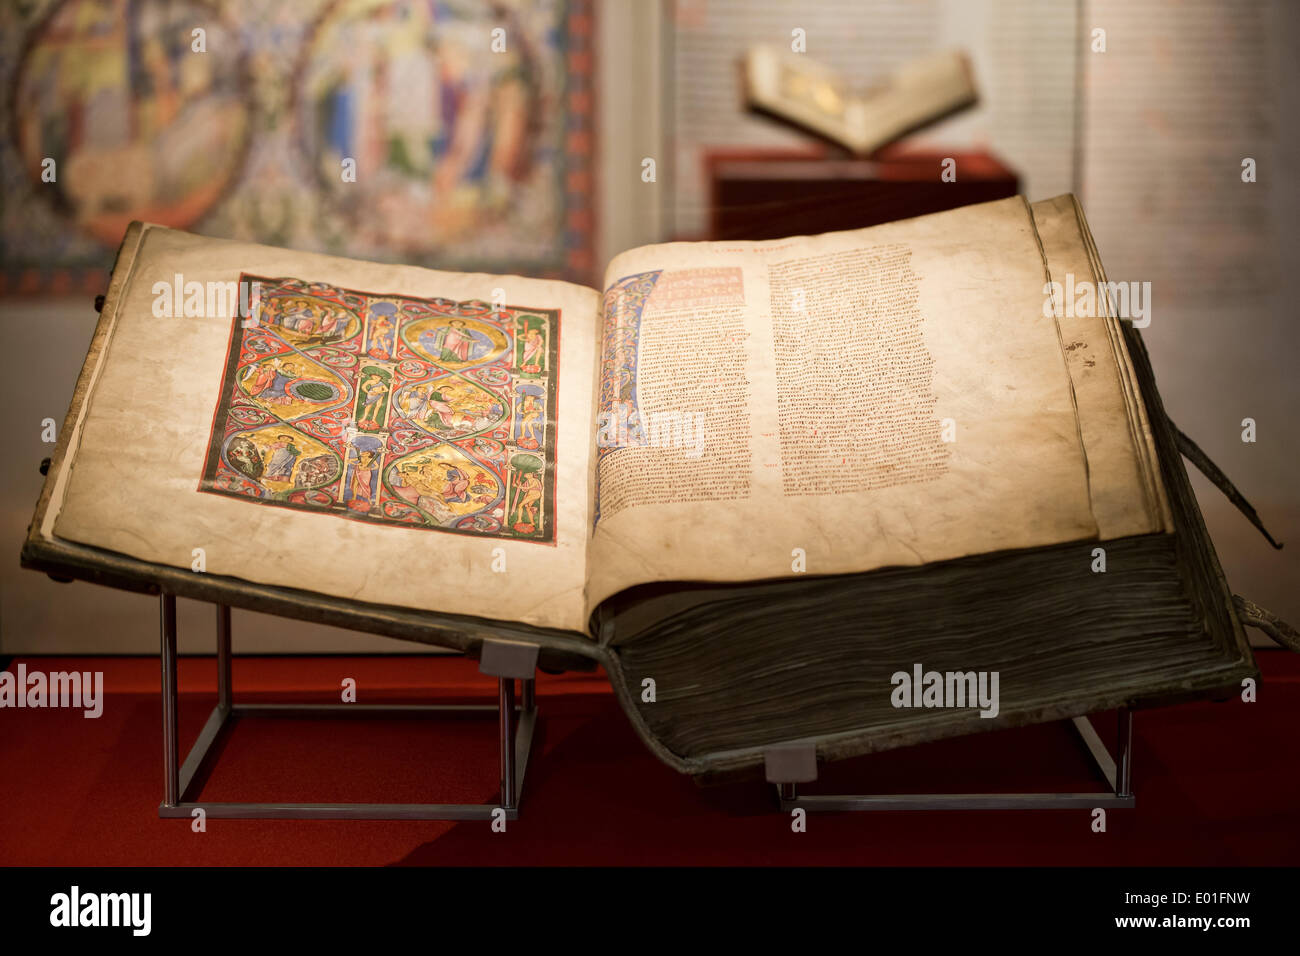 Nuremberg, Germany. 28th Apr, 2014. The so-called 'Gumbertus' Bible' is on display at the Germanisches Nationalmuseum in Nuremberg, Germany, 28 April 2014. The bible from the 12th century AD is one of the most magnificent manuscripts of the High Middle Ages. The exhibition 'The Gumbertus's Bible. Golden pictorial splendour of the Romanesque Era' continues till 27 July 2014. Photo: Daniel Karmann/dpa/Alamy Live News - Stock Image